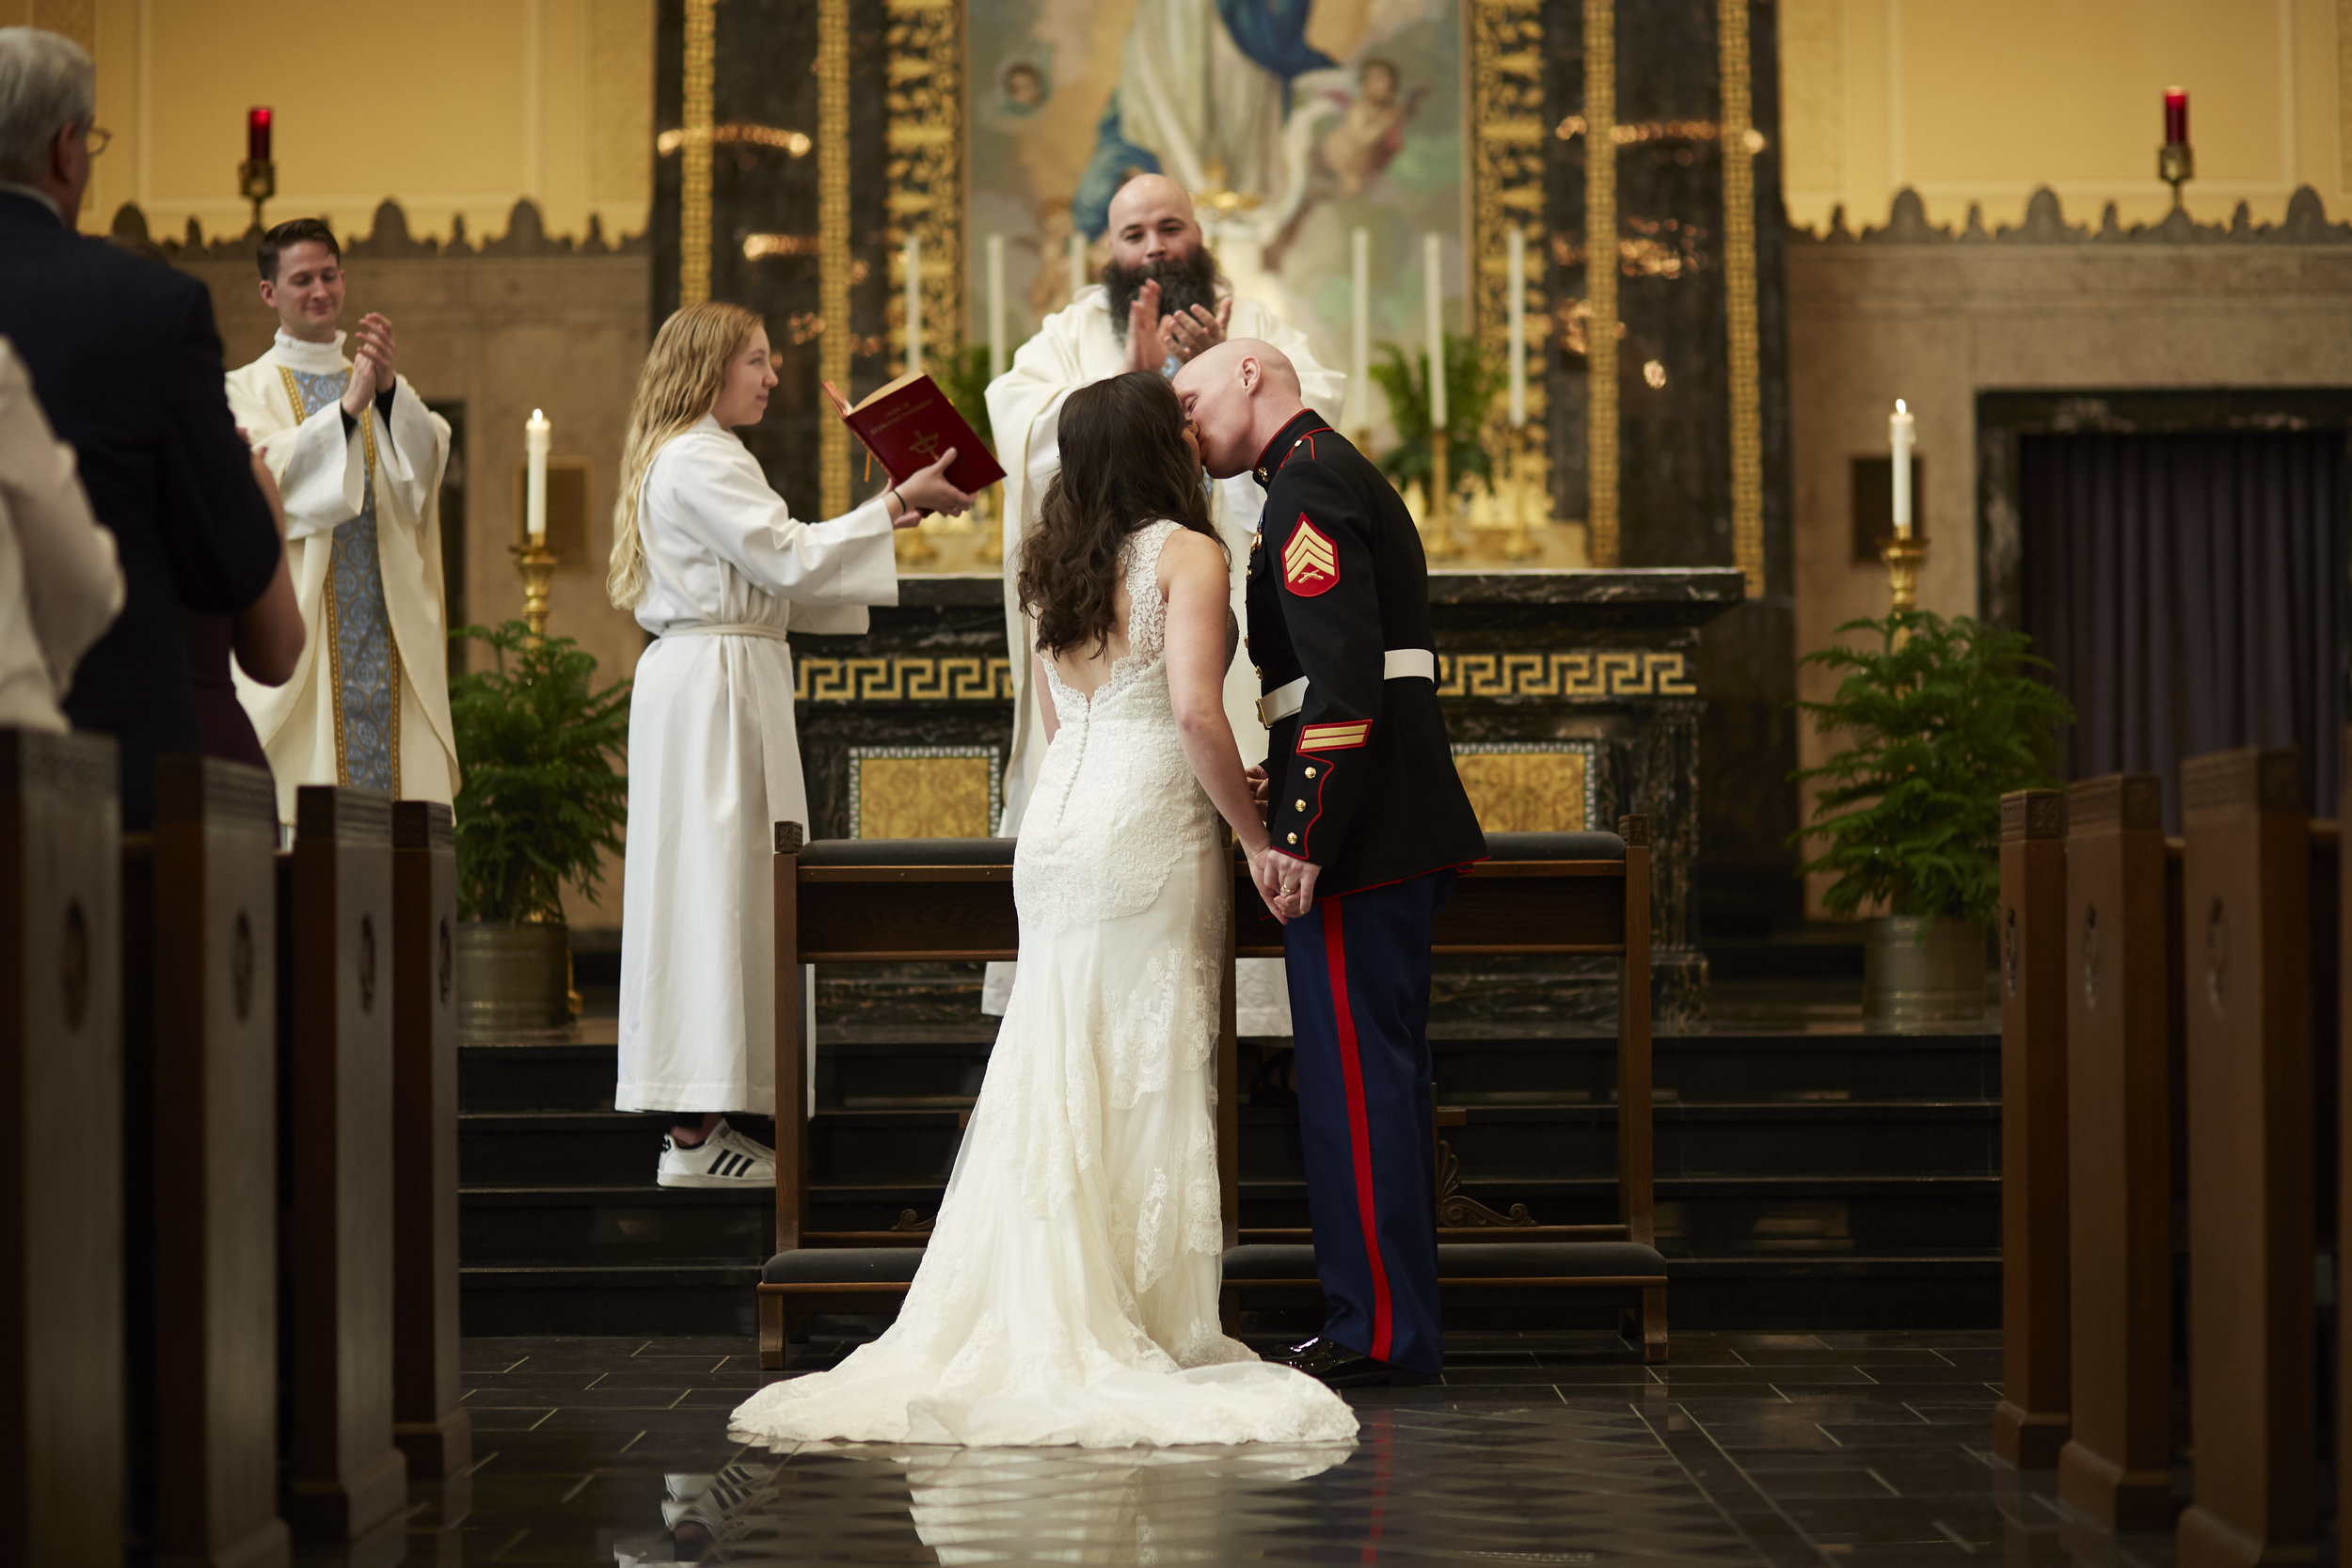 Illinois church wedding ceremony first kiss